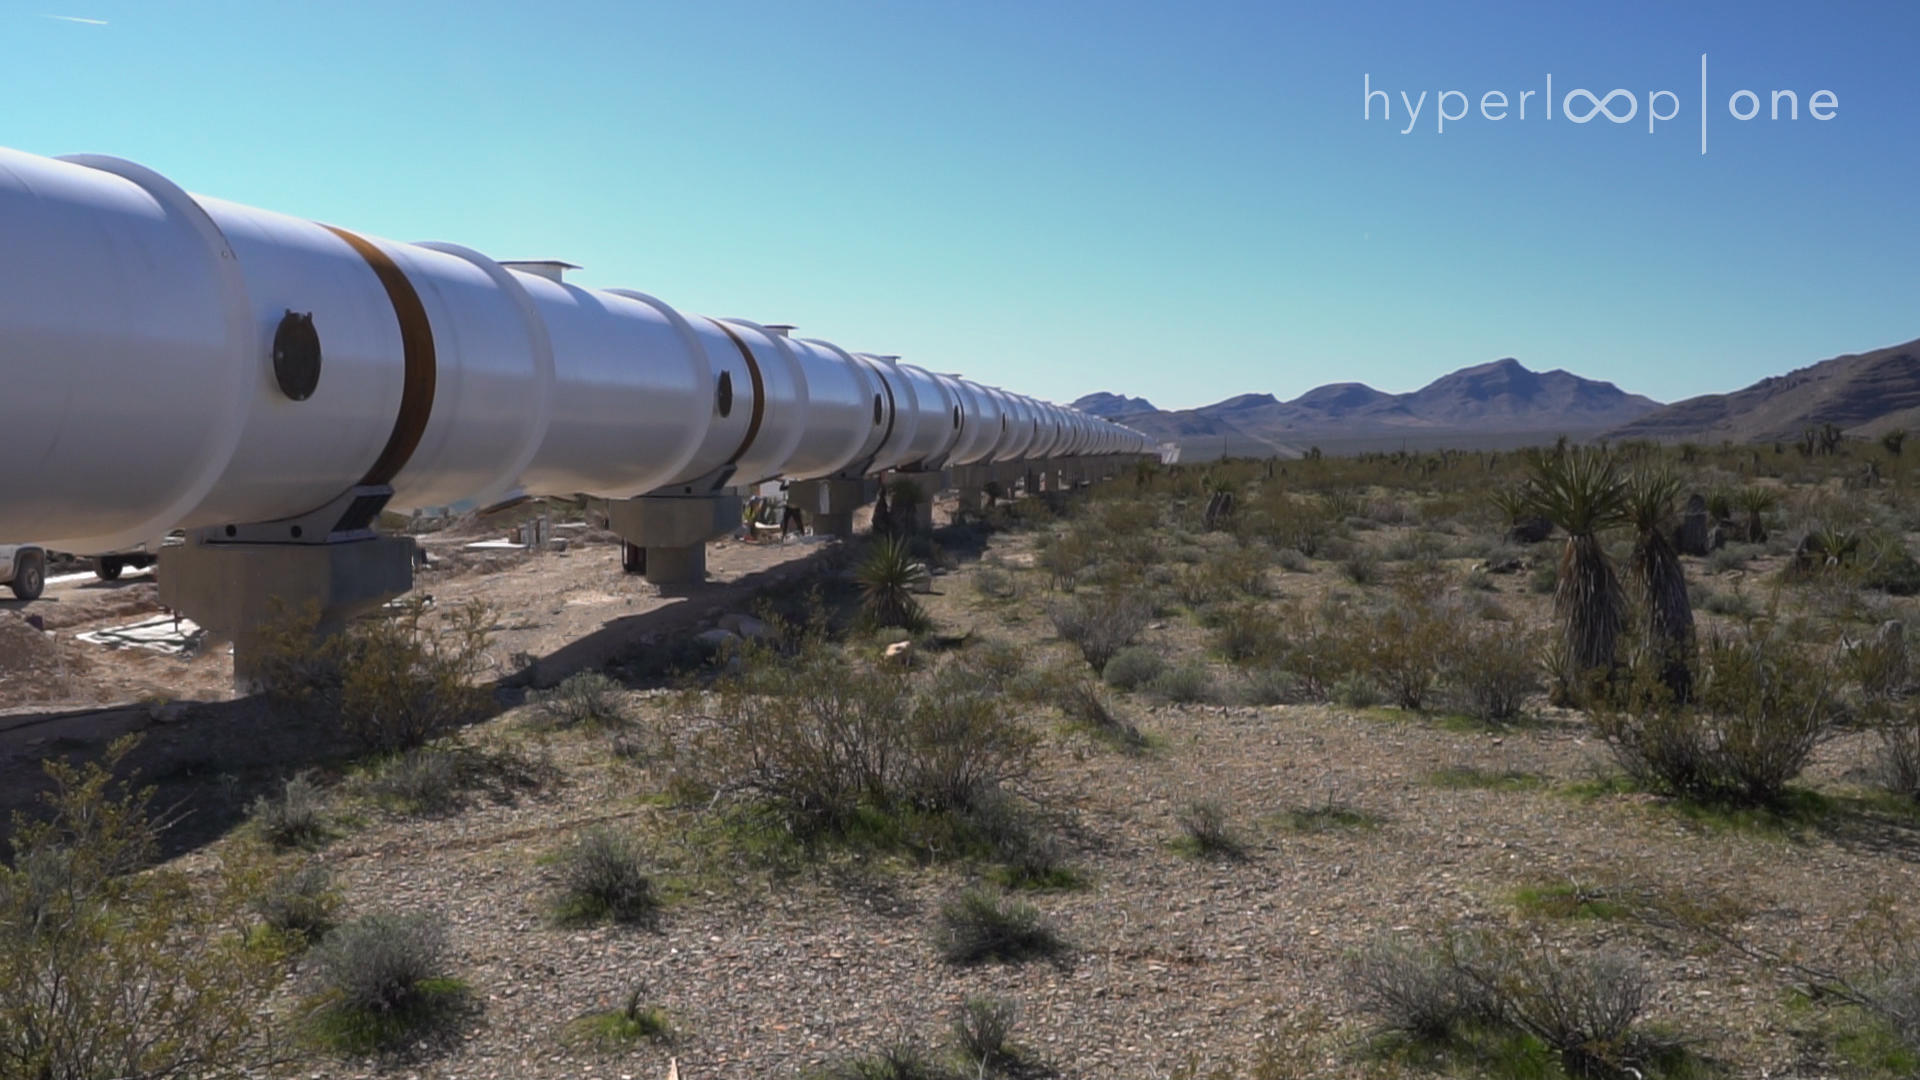 hyperloop-one-test-track-nevada-6